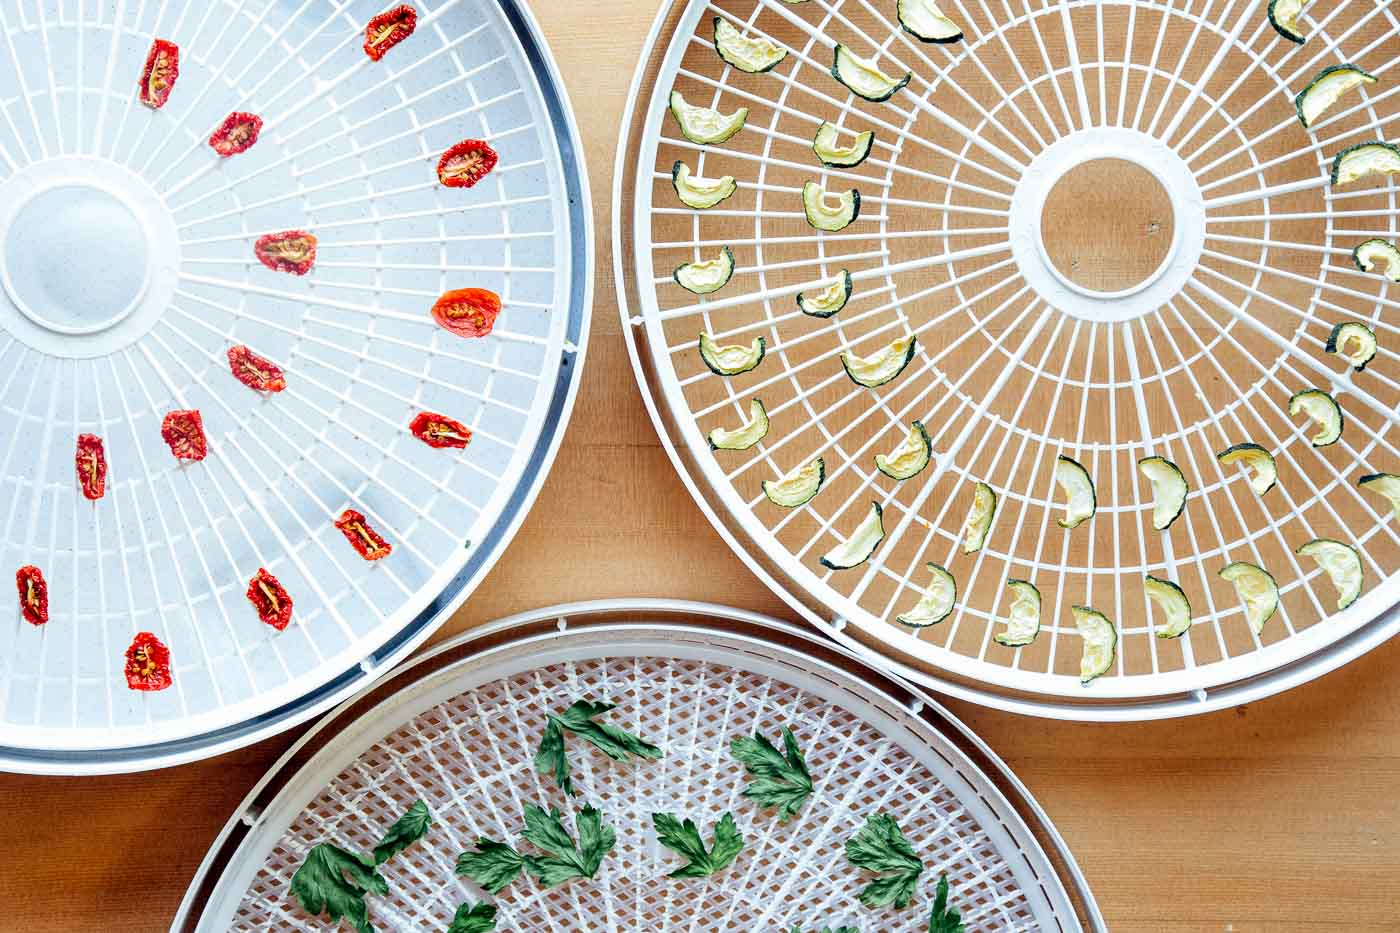 Dehydrator trays with dried vegetables